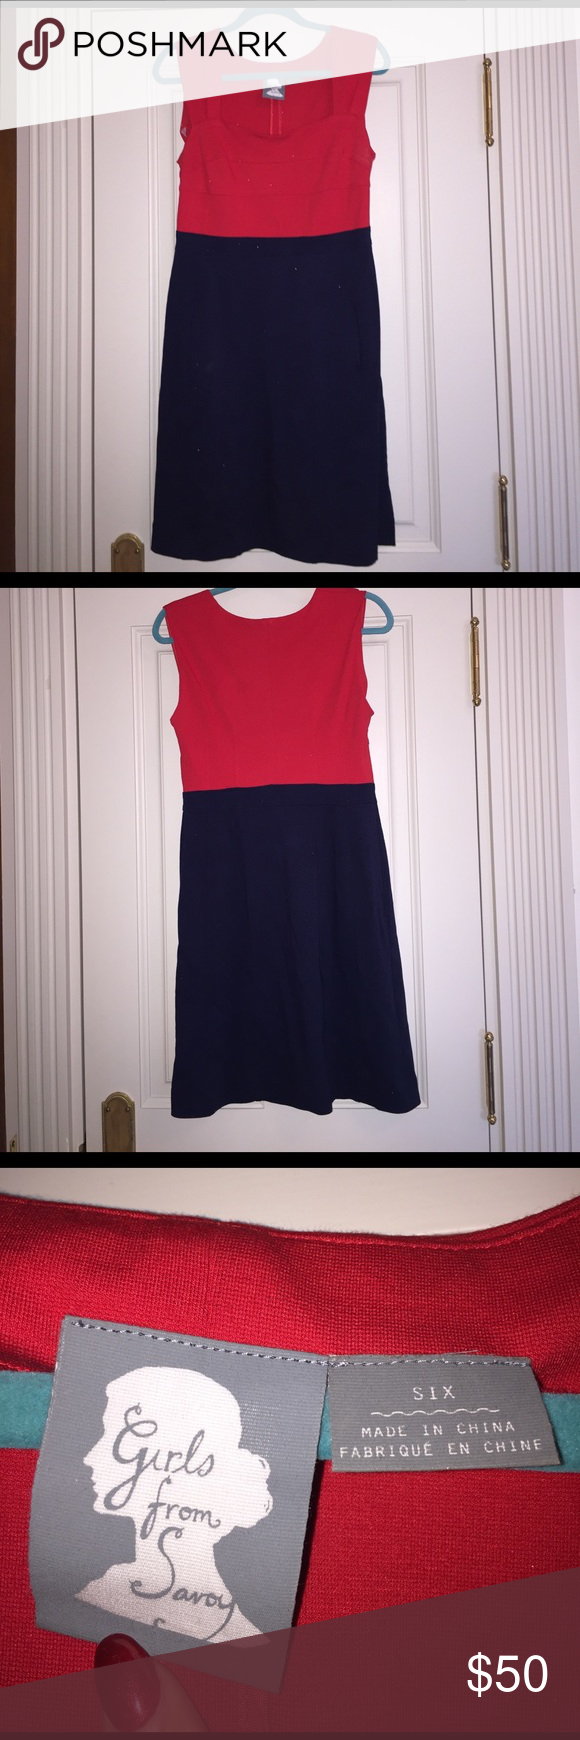 Girls from Savoy size 6 dress This dress has only been worn a handful of times and is originally from Anthropologie. It's a great work dress or dress for someone who prefers a more conservative look. It has pockets and is very comfortable to wear for long periods of time. It doesn't have a zipper, making it easy to throw on. If you're a person with a good size chest, this is a great dress! It's in great condition. Scale 1-10: 9.5 girls from savoy Dresses Midi